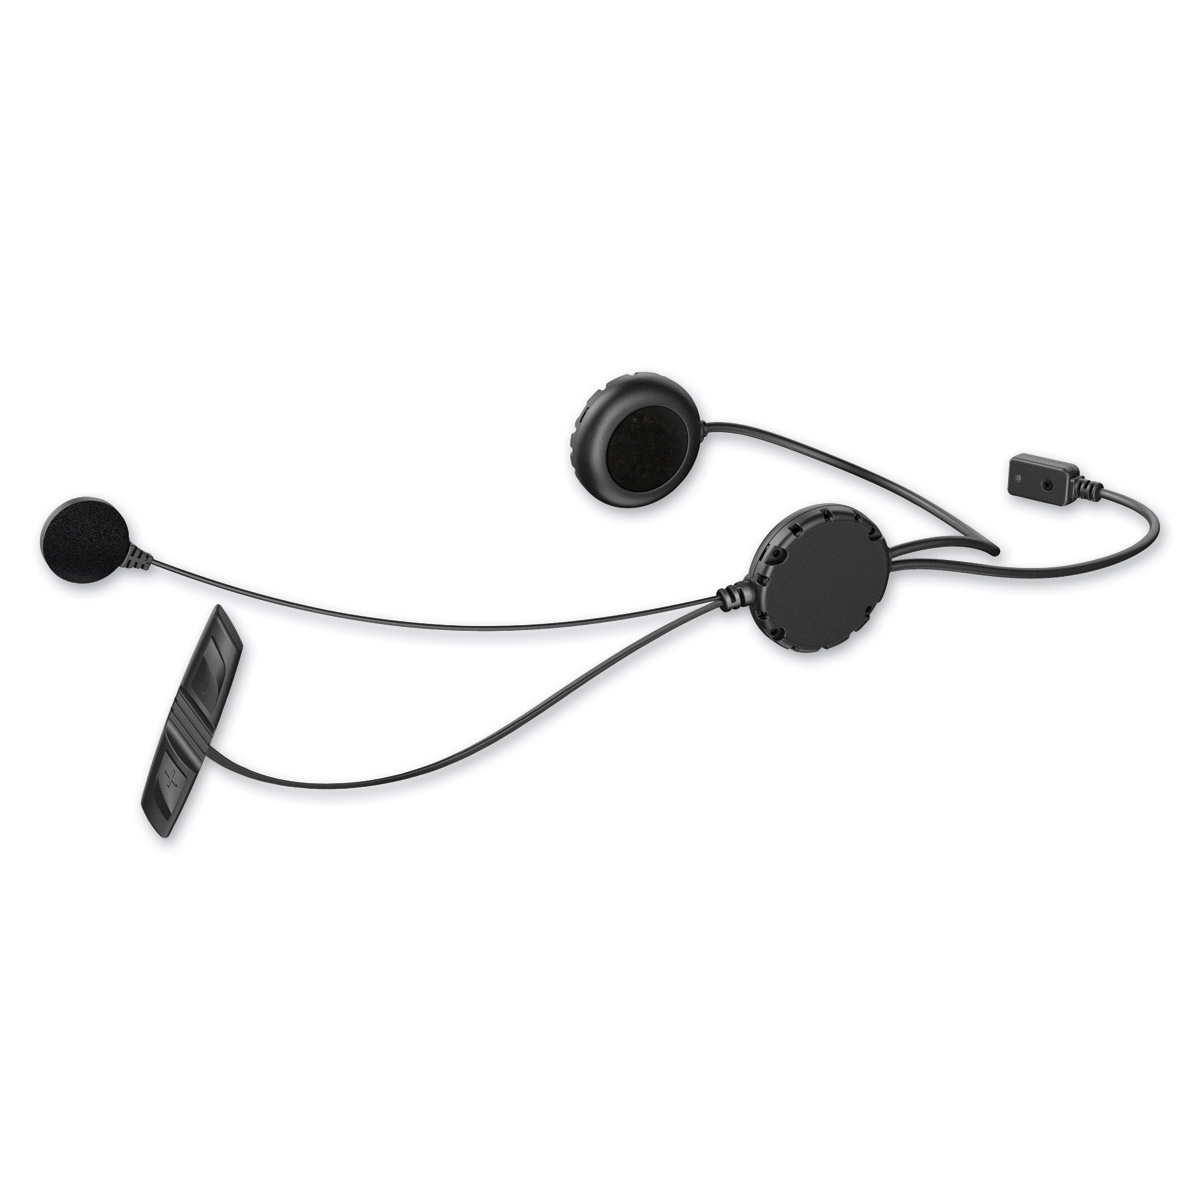 Sena Technologies 3S Stereo Headset Single Pack Full Face Wired Microphone Kit